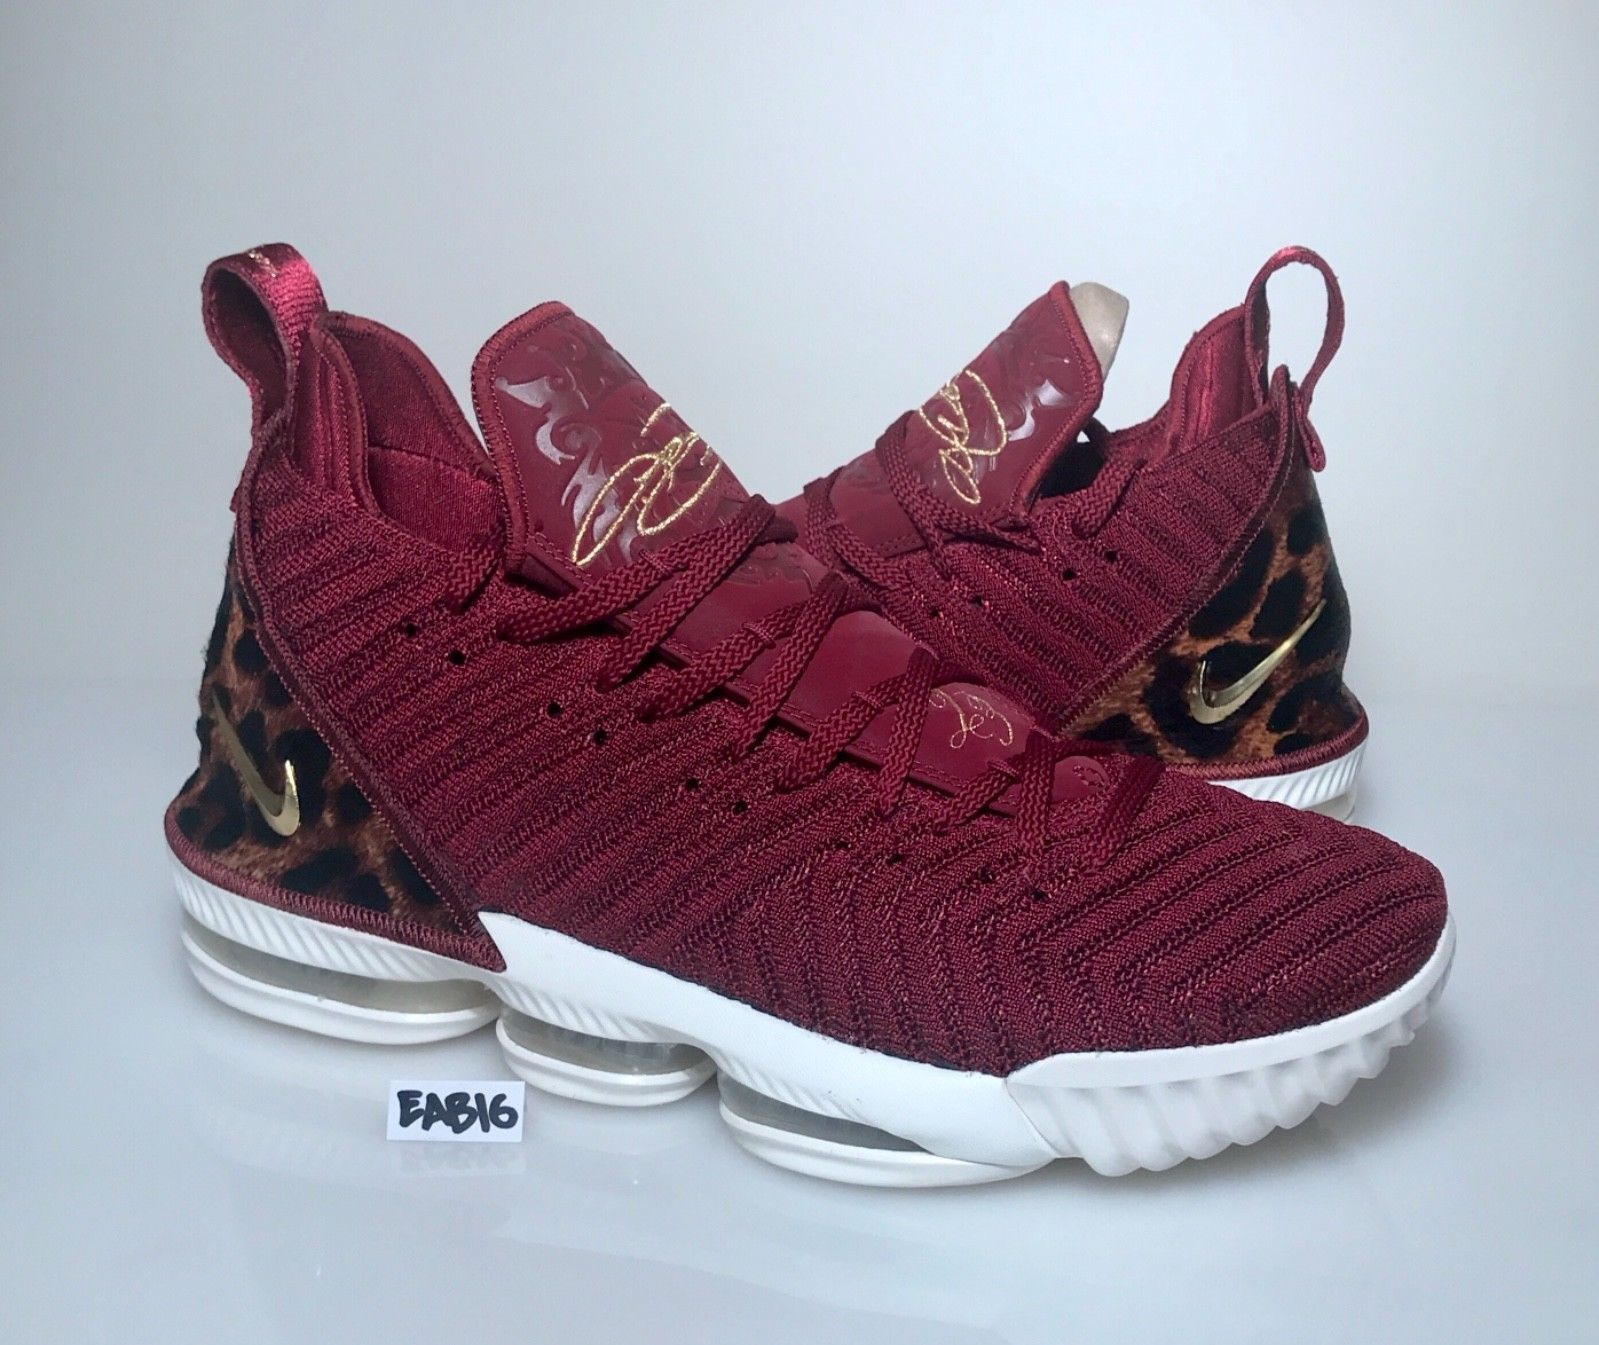 57a137db0f1 Nike LeBron 16 King Team Red Metallic Gold-Multi Color AO2588-601 Leopard  Print